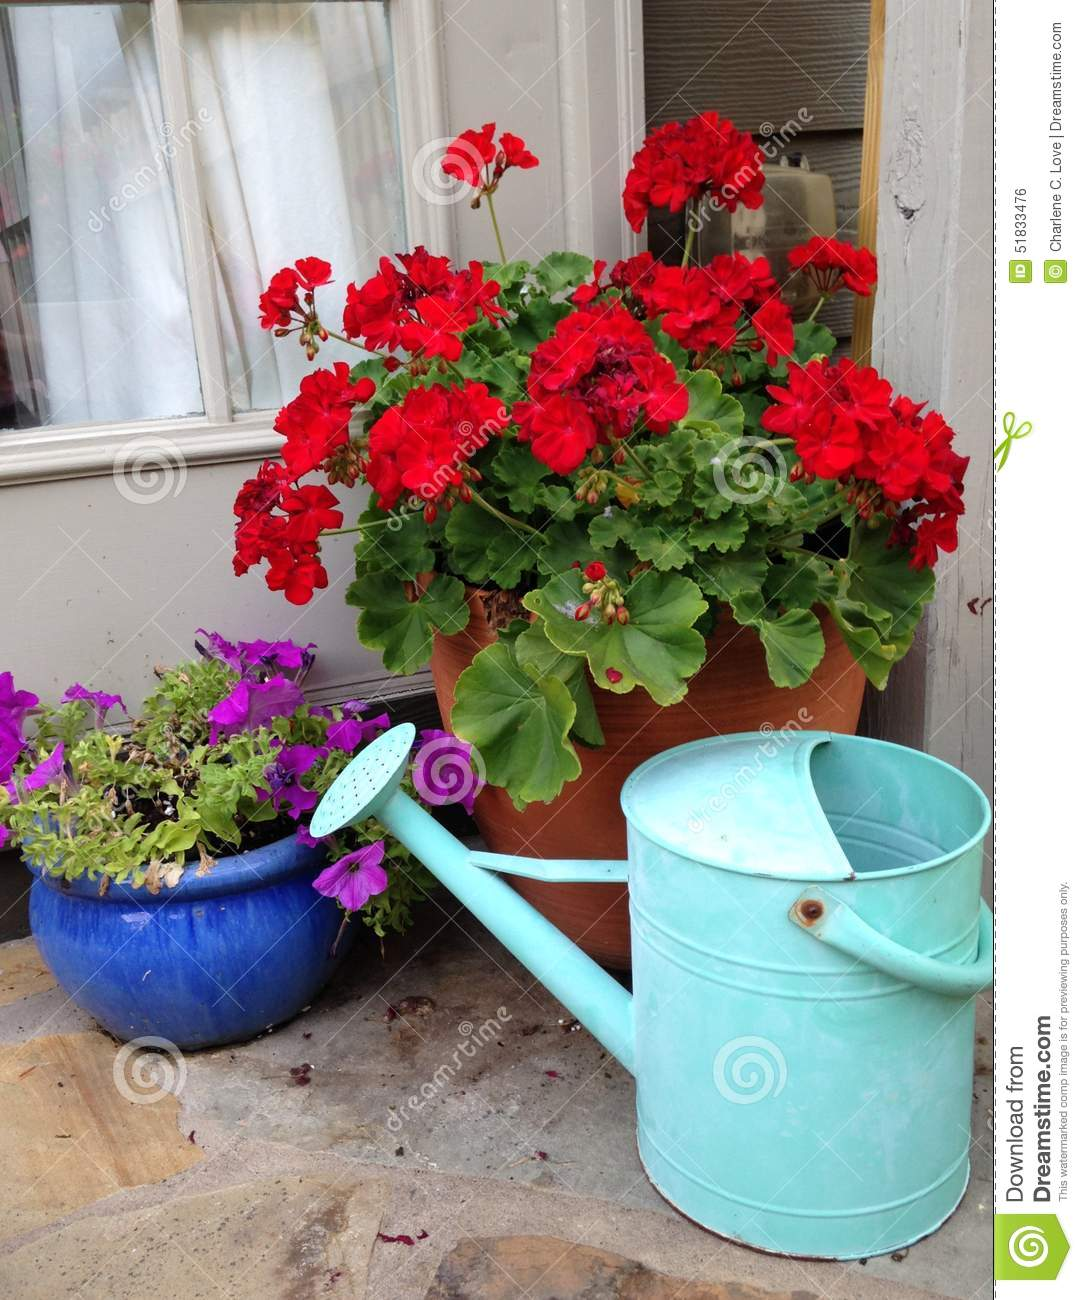 Watering can and flowers stock photo image 51833476 - Care geraniums flourishing balcony porch ...